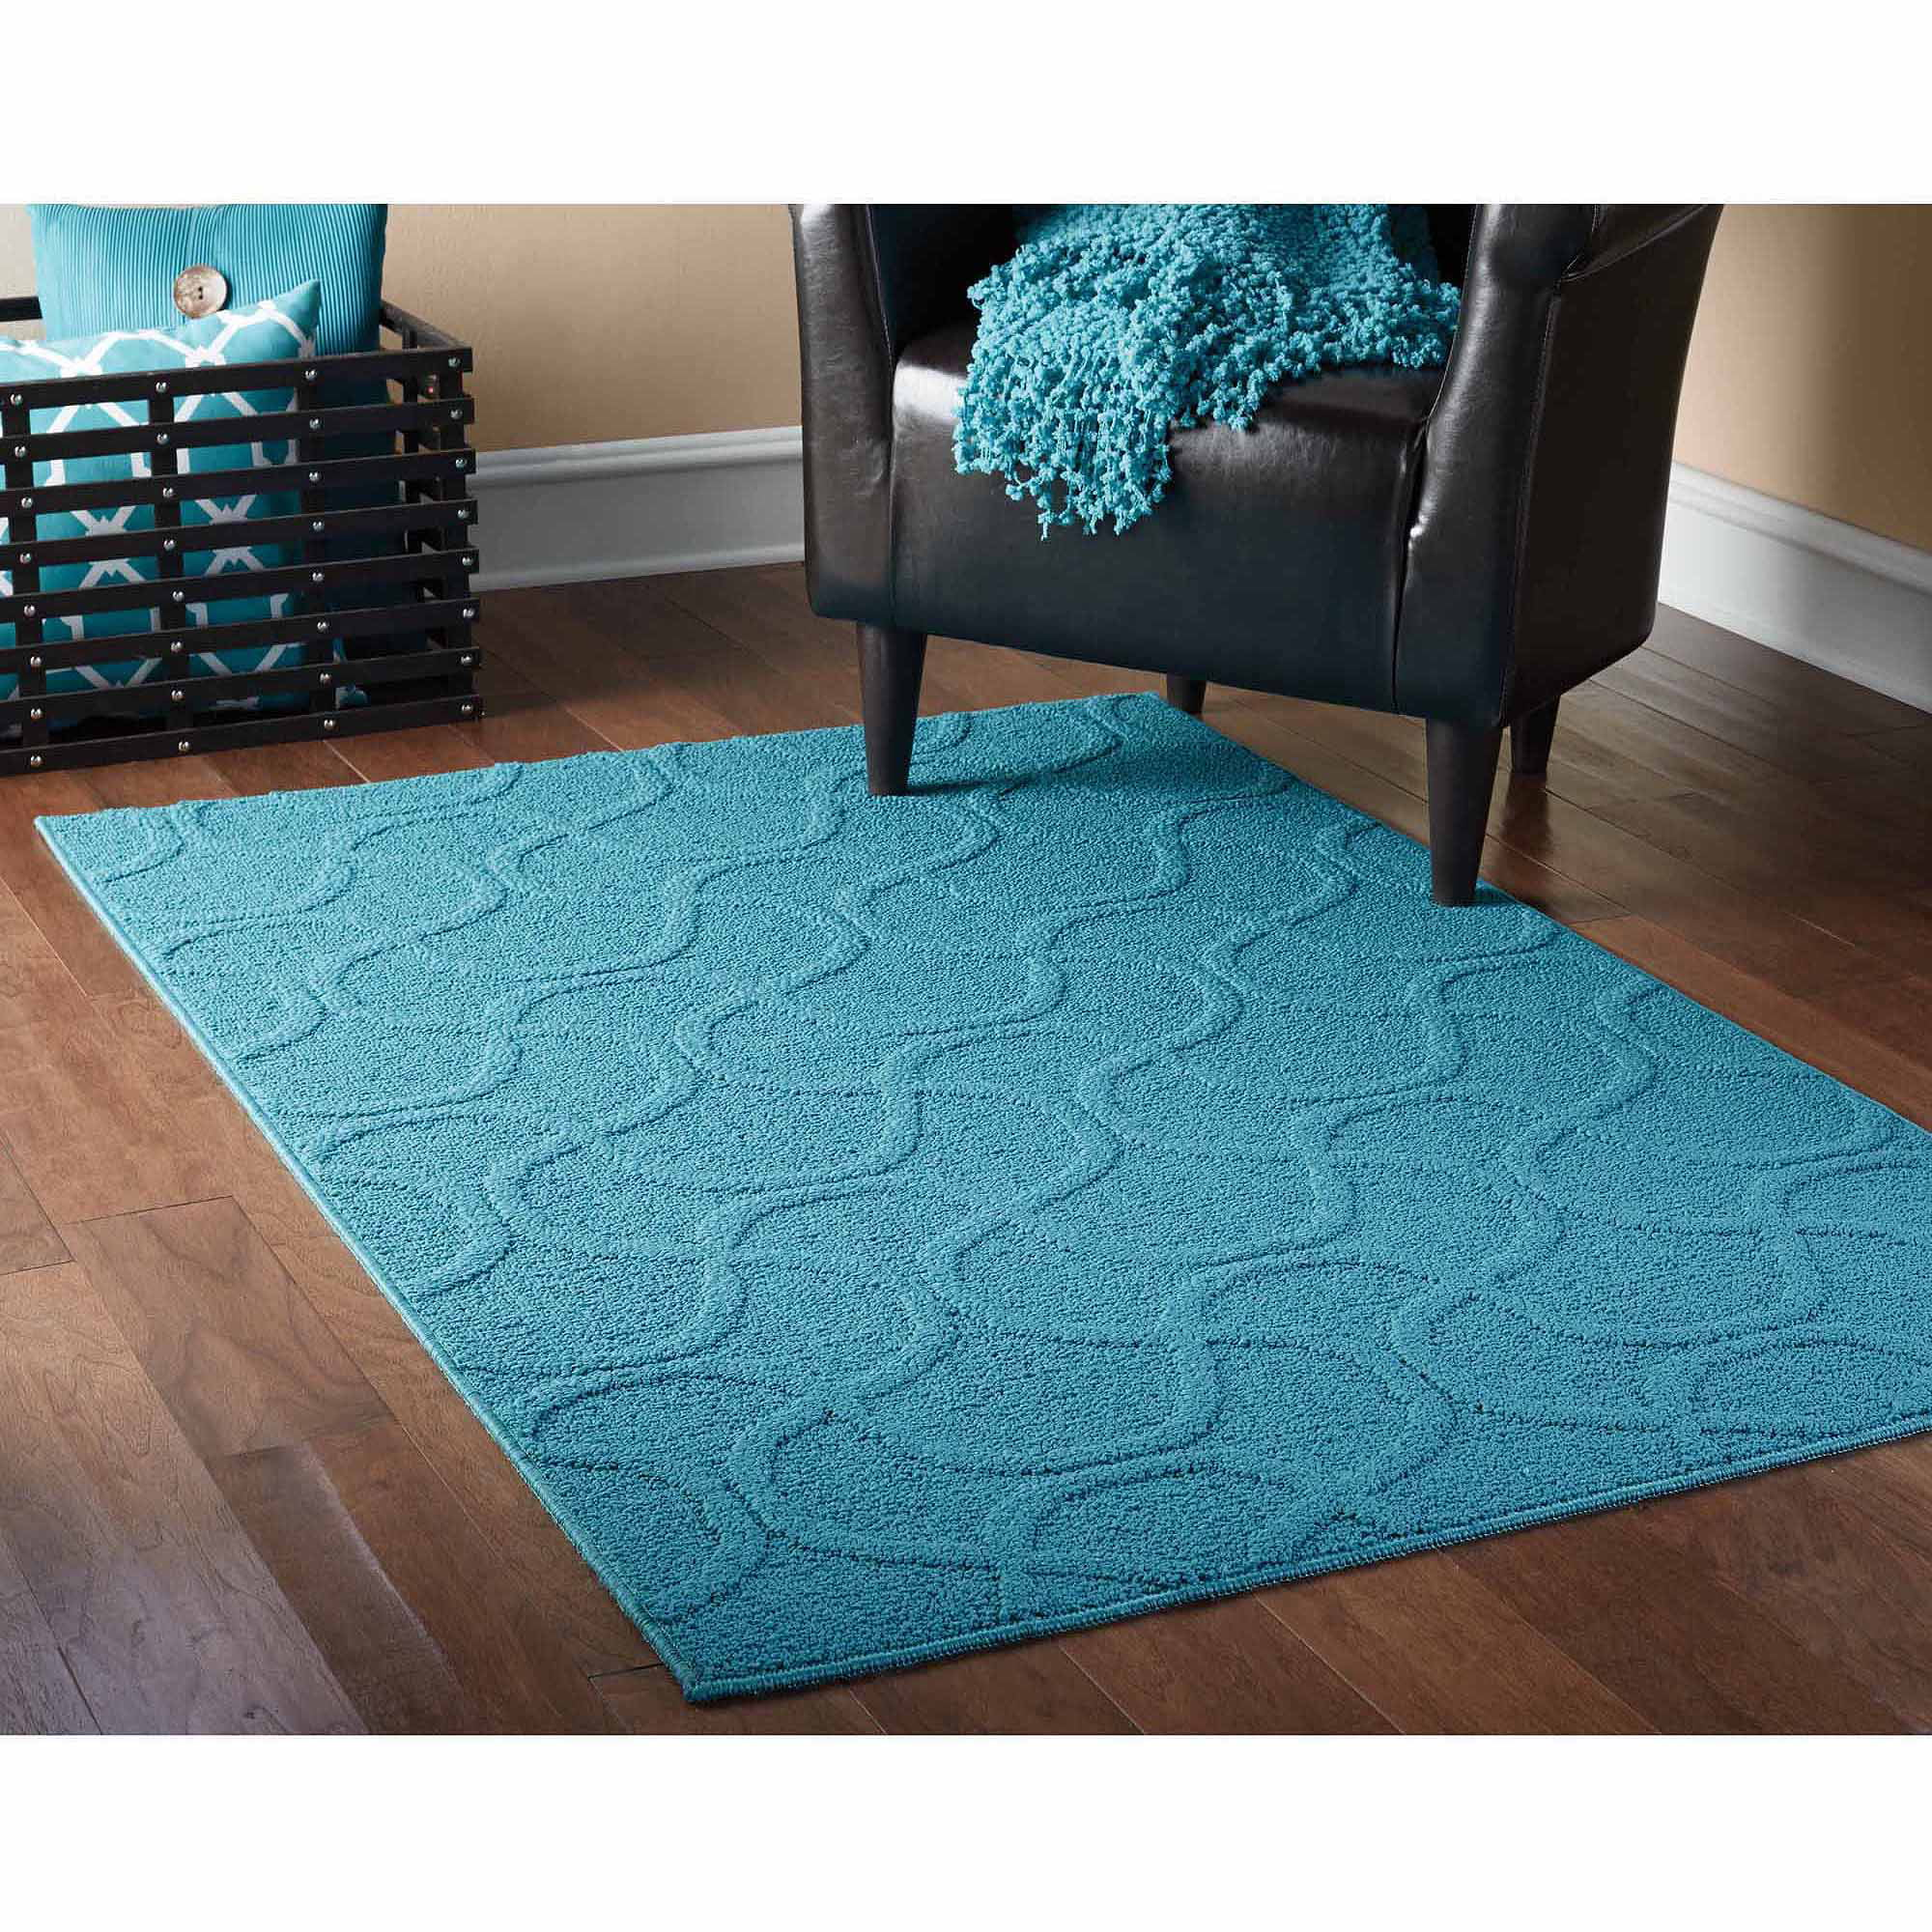 Mainstays Fancy Fret Area Rug Walmart Com